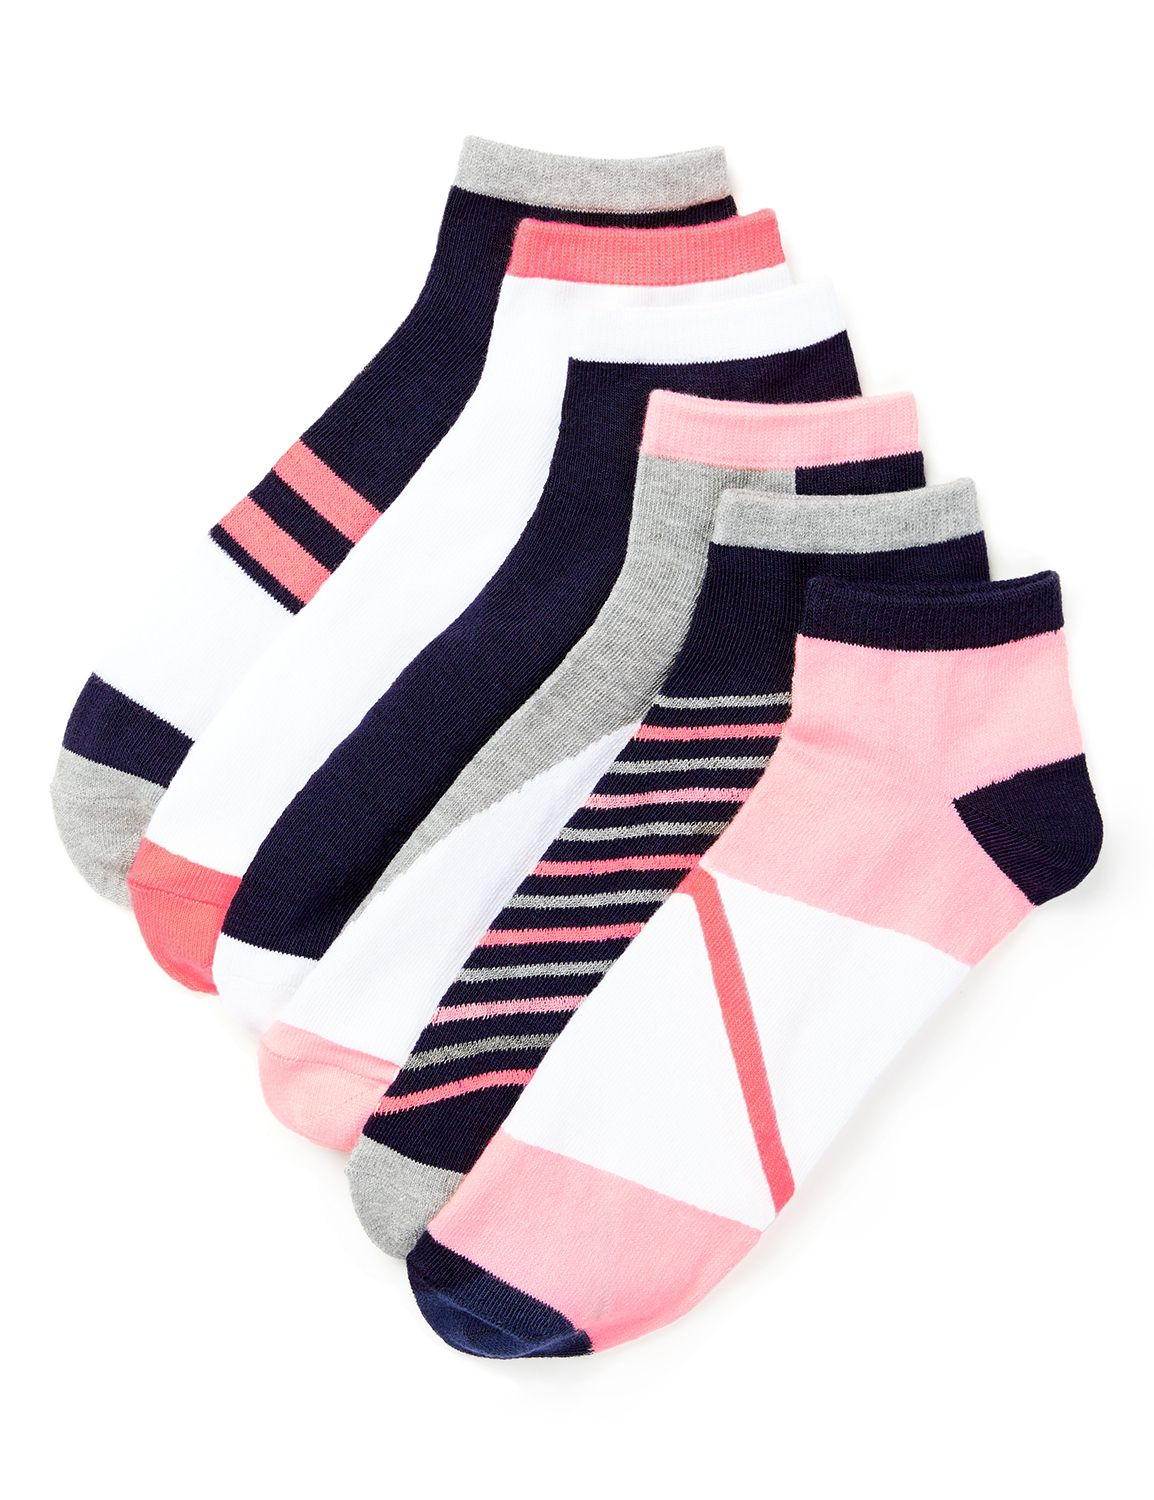 Pink and Grey 6-Pack Socks Act 6pk lw cuts pnk/gry SOX-65684 MP-300094395